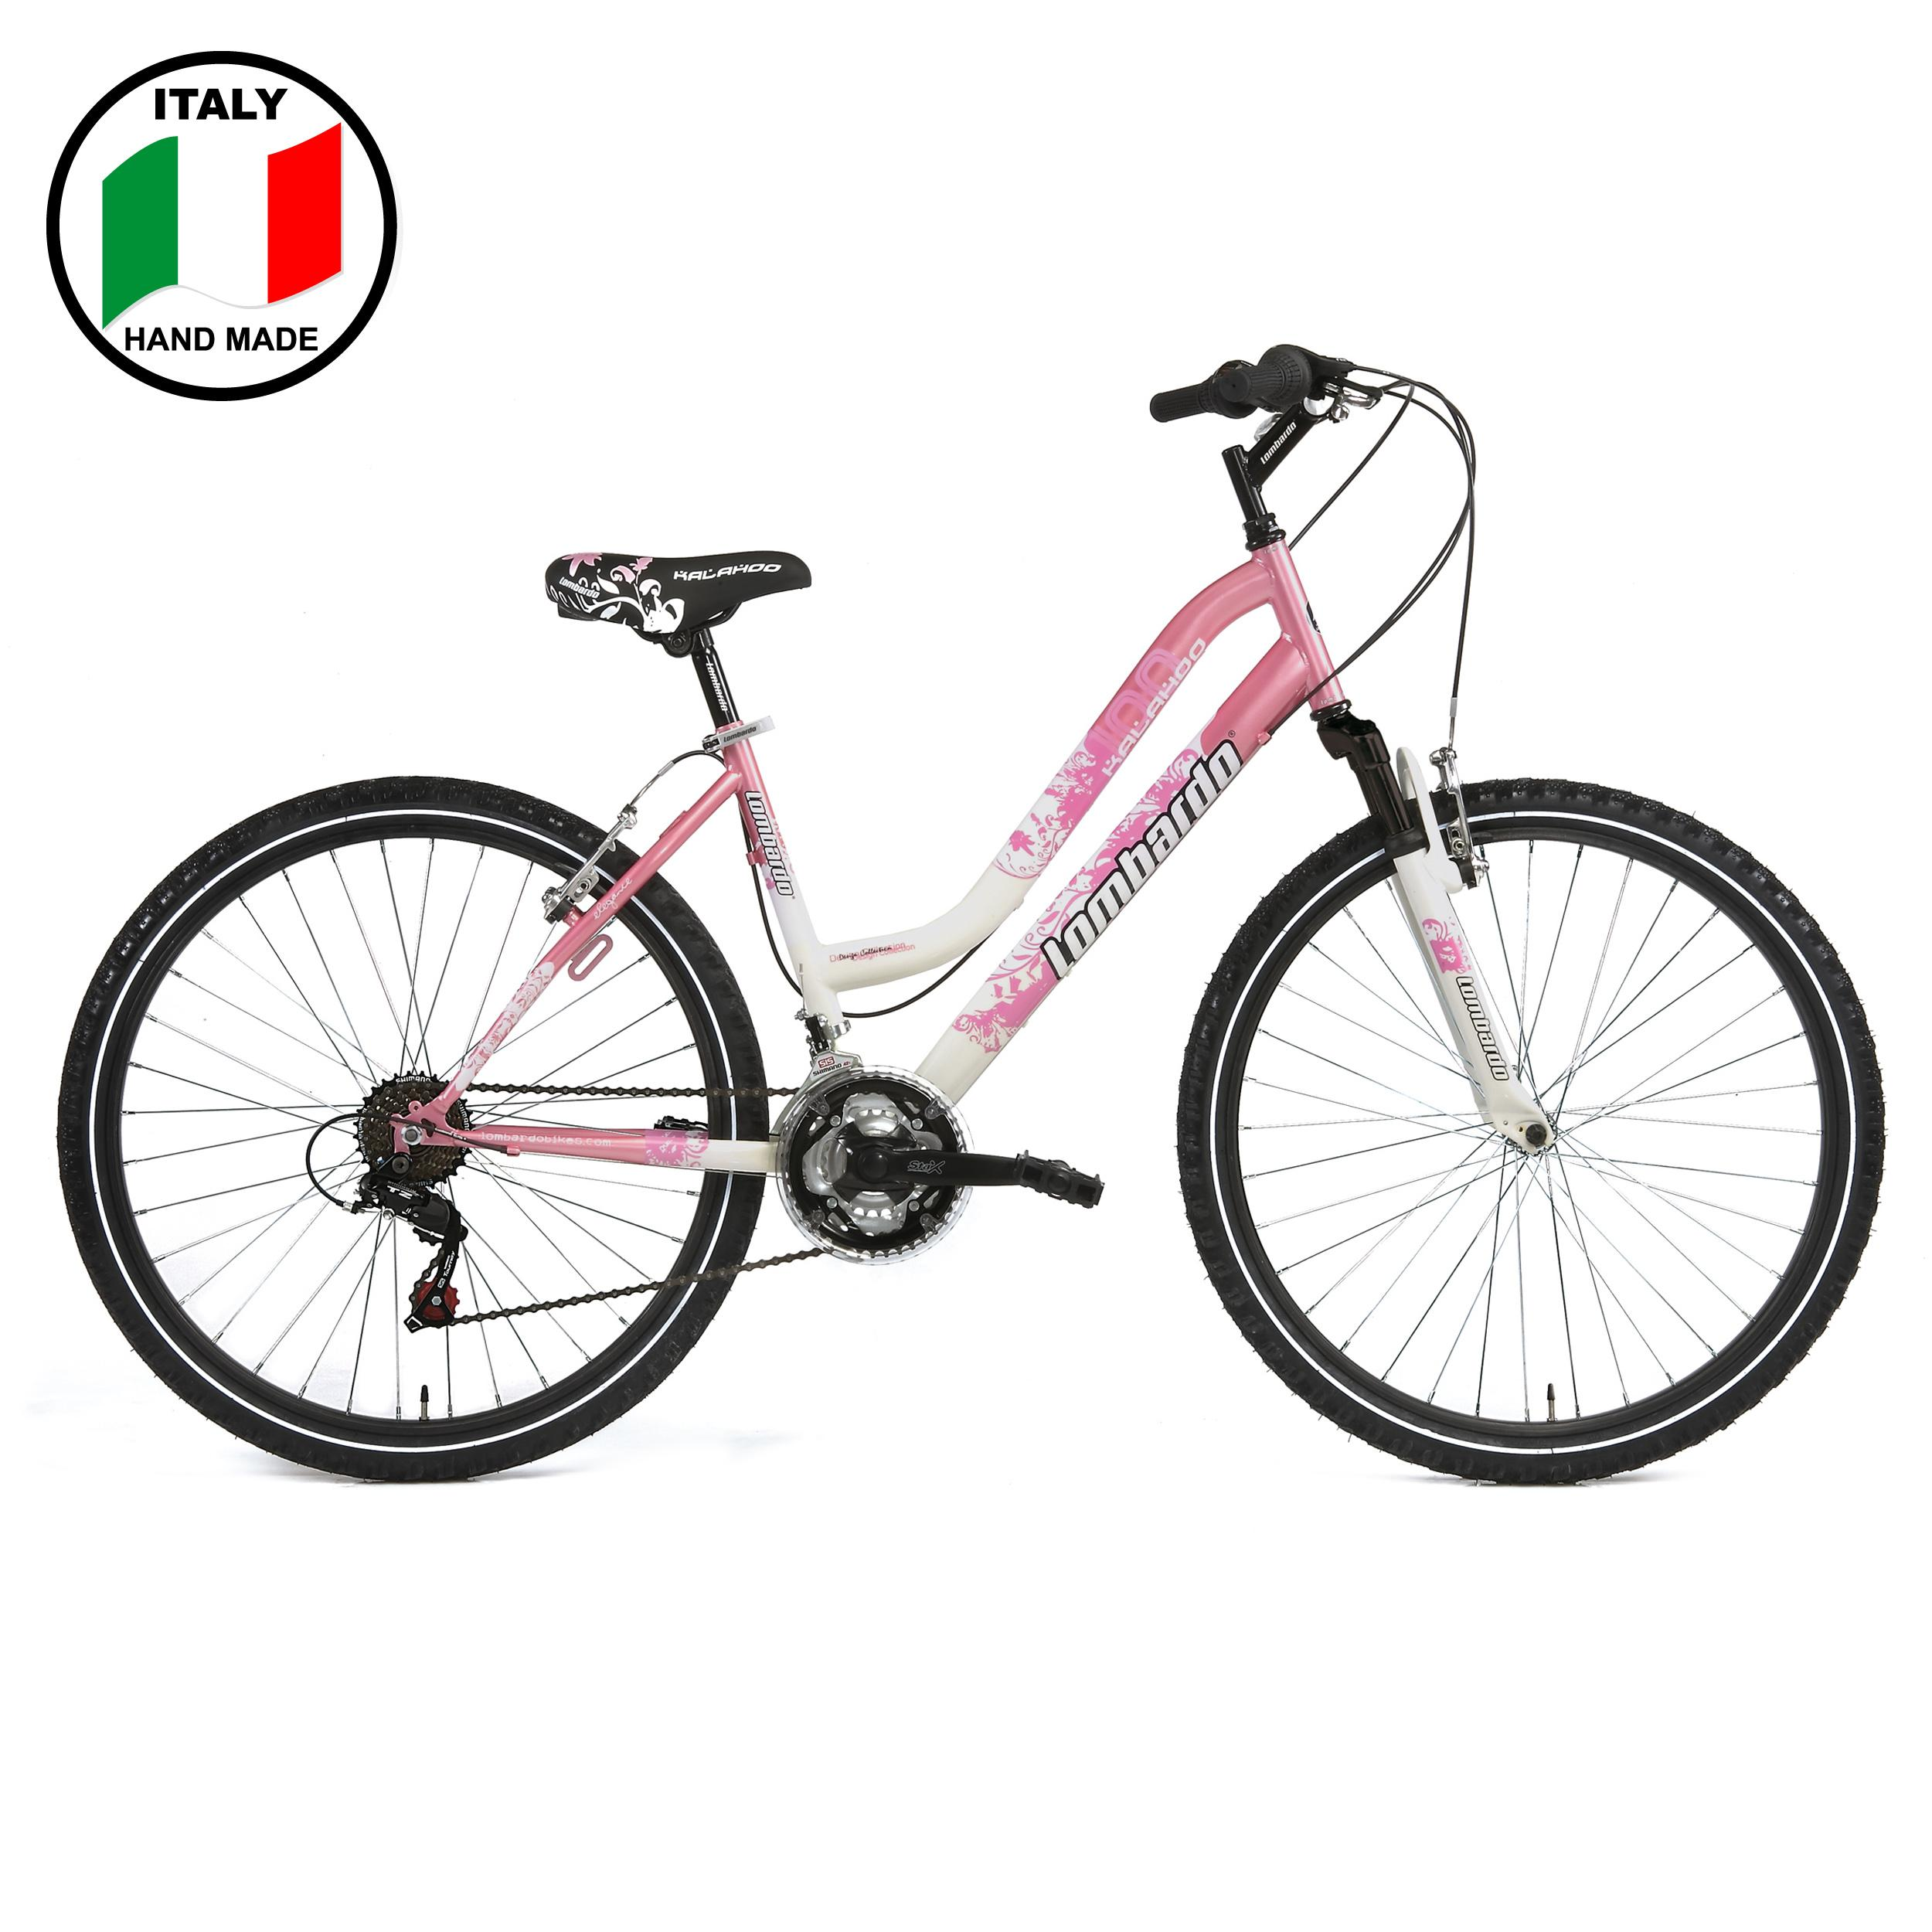 Lombardo Women's Kalahoo 100 Bicycle